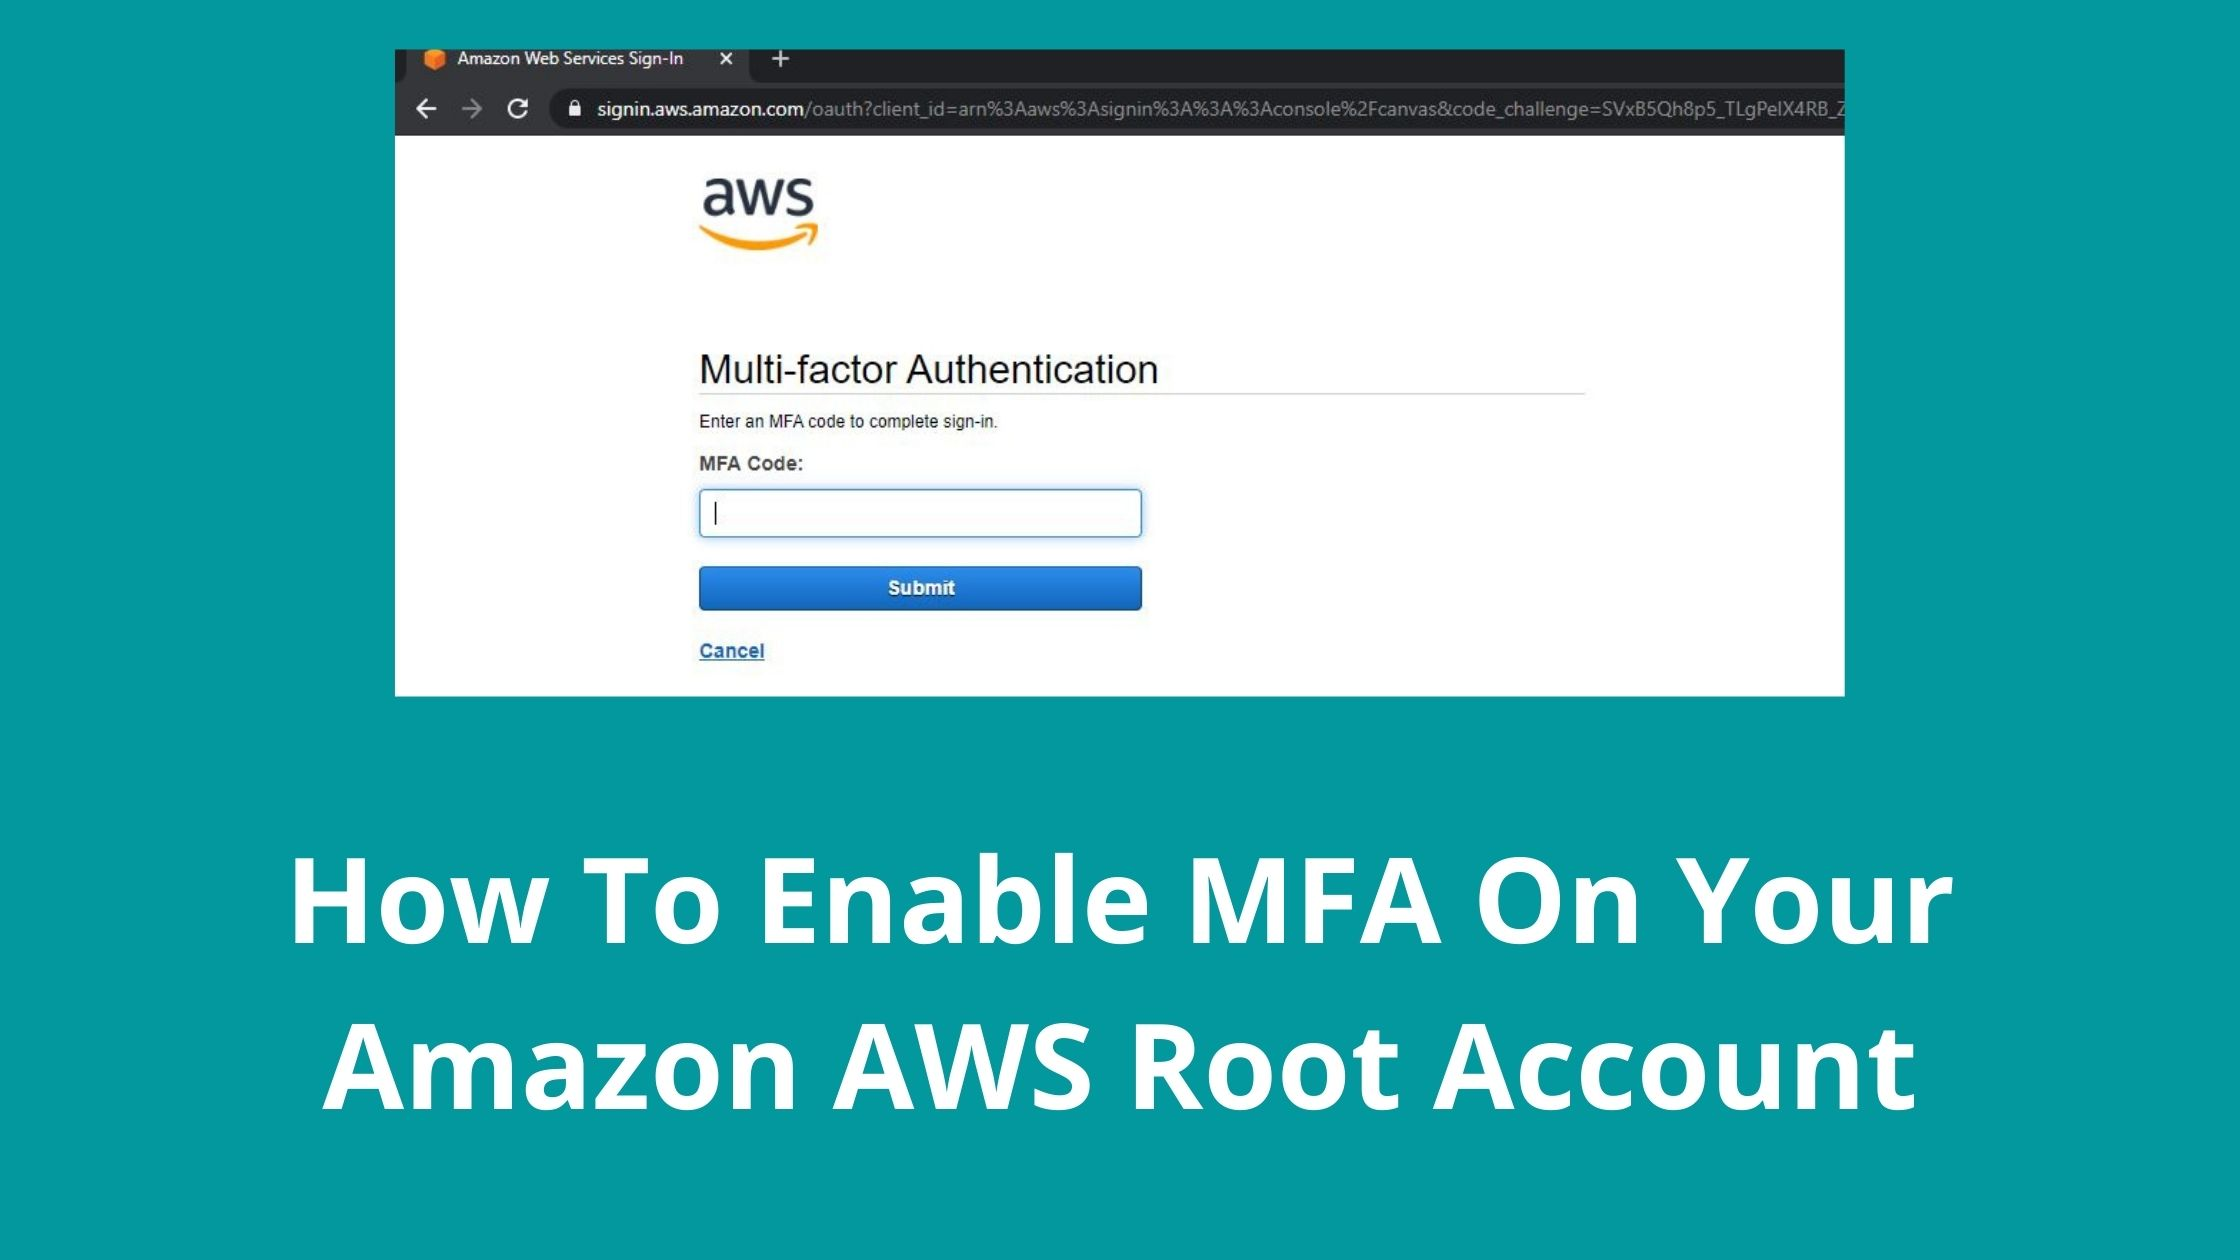 How To Enable MFA On Your Amazon AWS Root Account